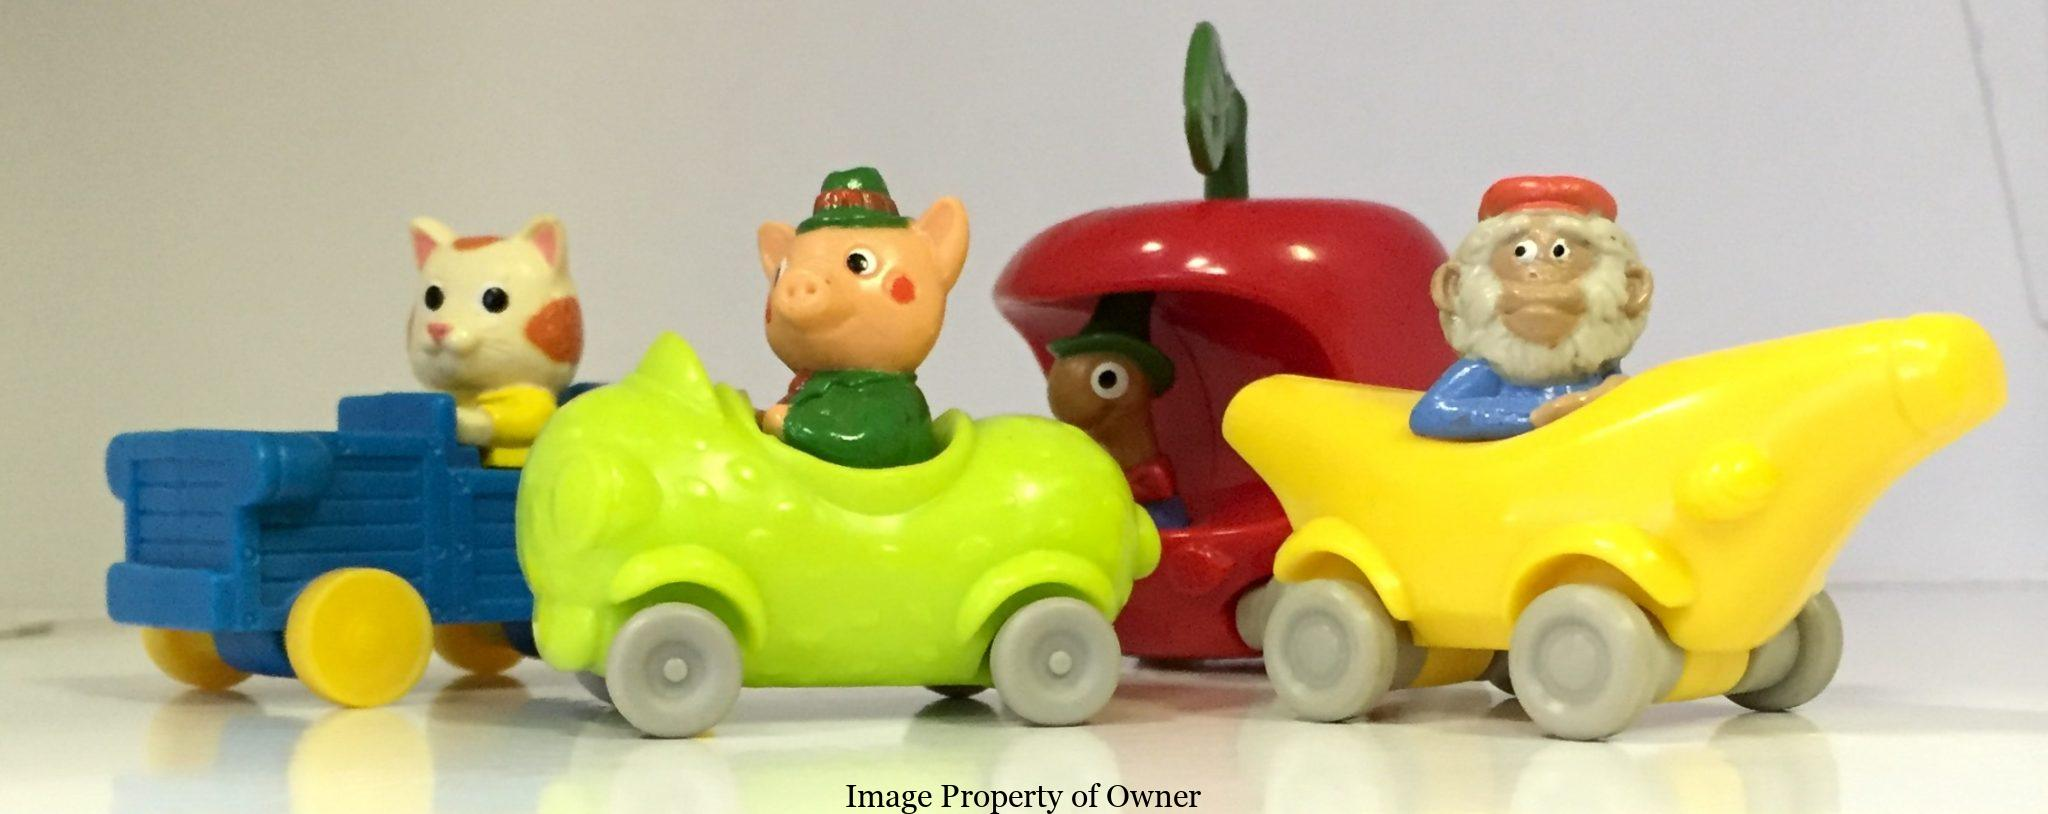 Mcdonald S Happy Meal Toys From The 80s 1987 Yello80s